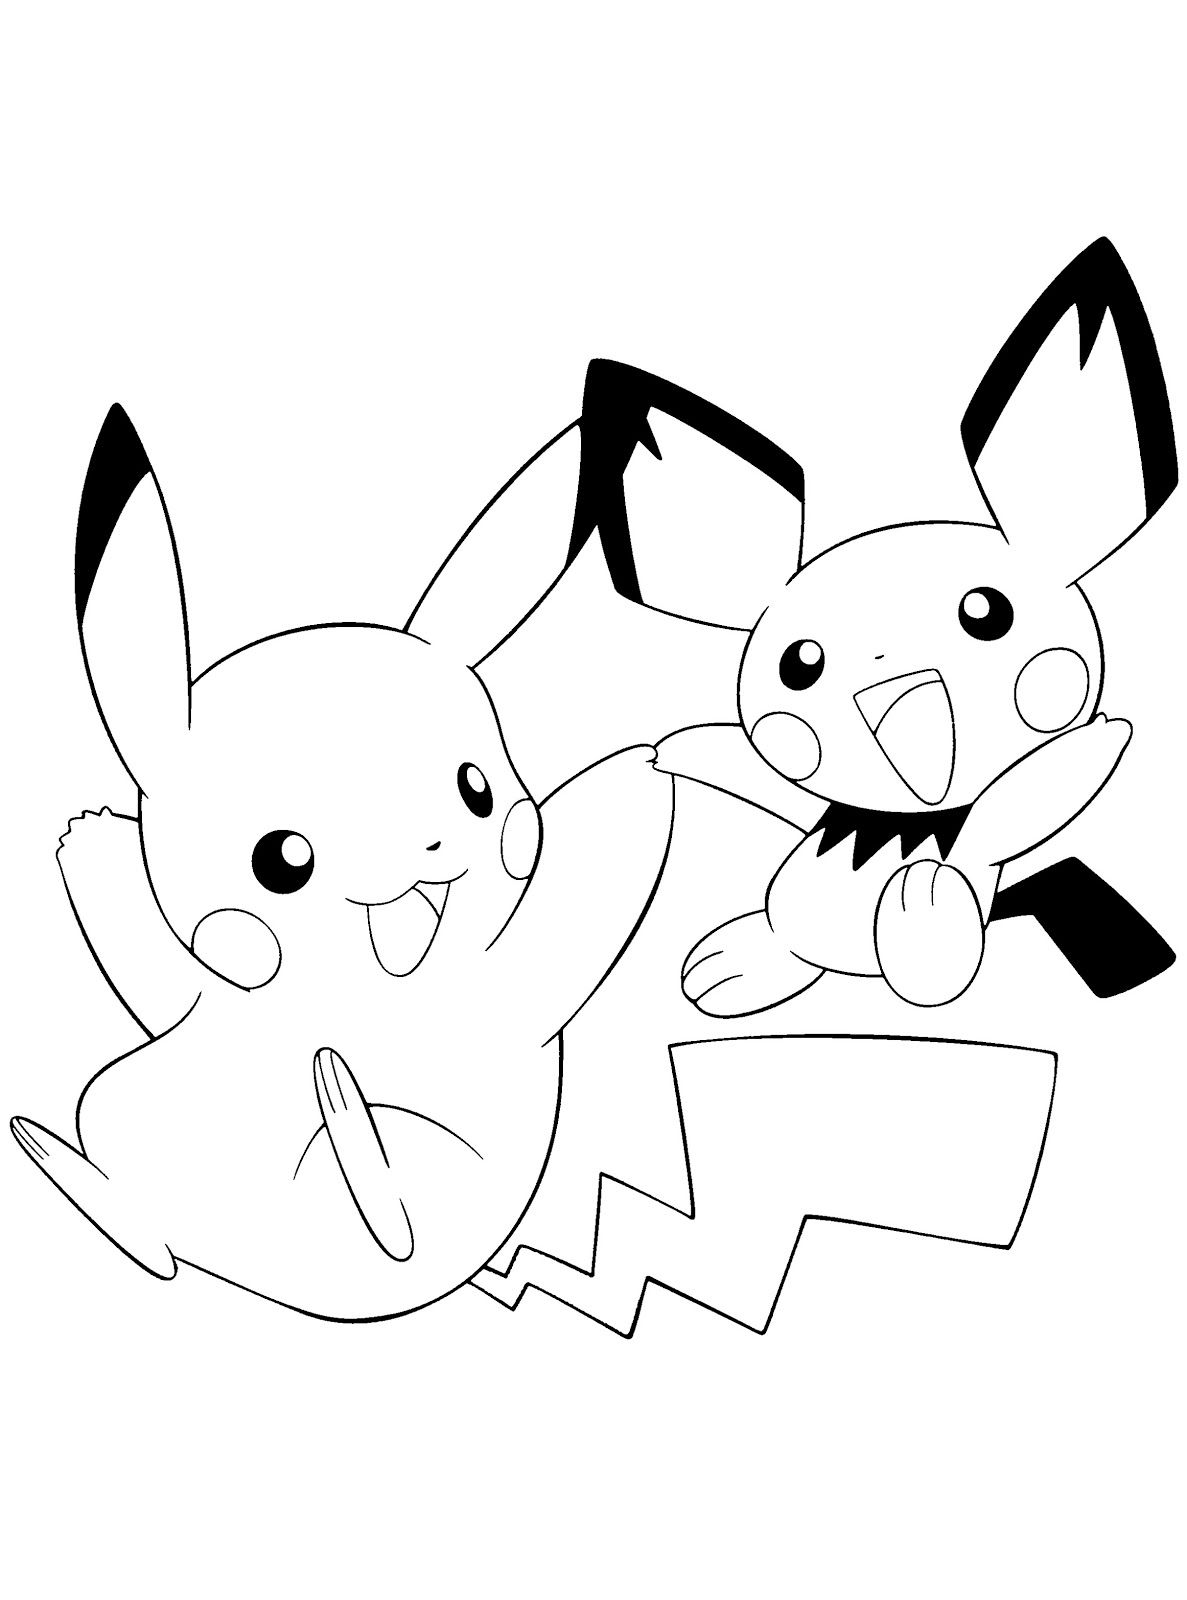 best printable pikachu and pichu coloring books in 2020 pikachu coloring page pokemon coloring pages pokemon coloring pikachu coloring page